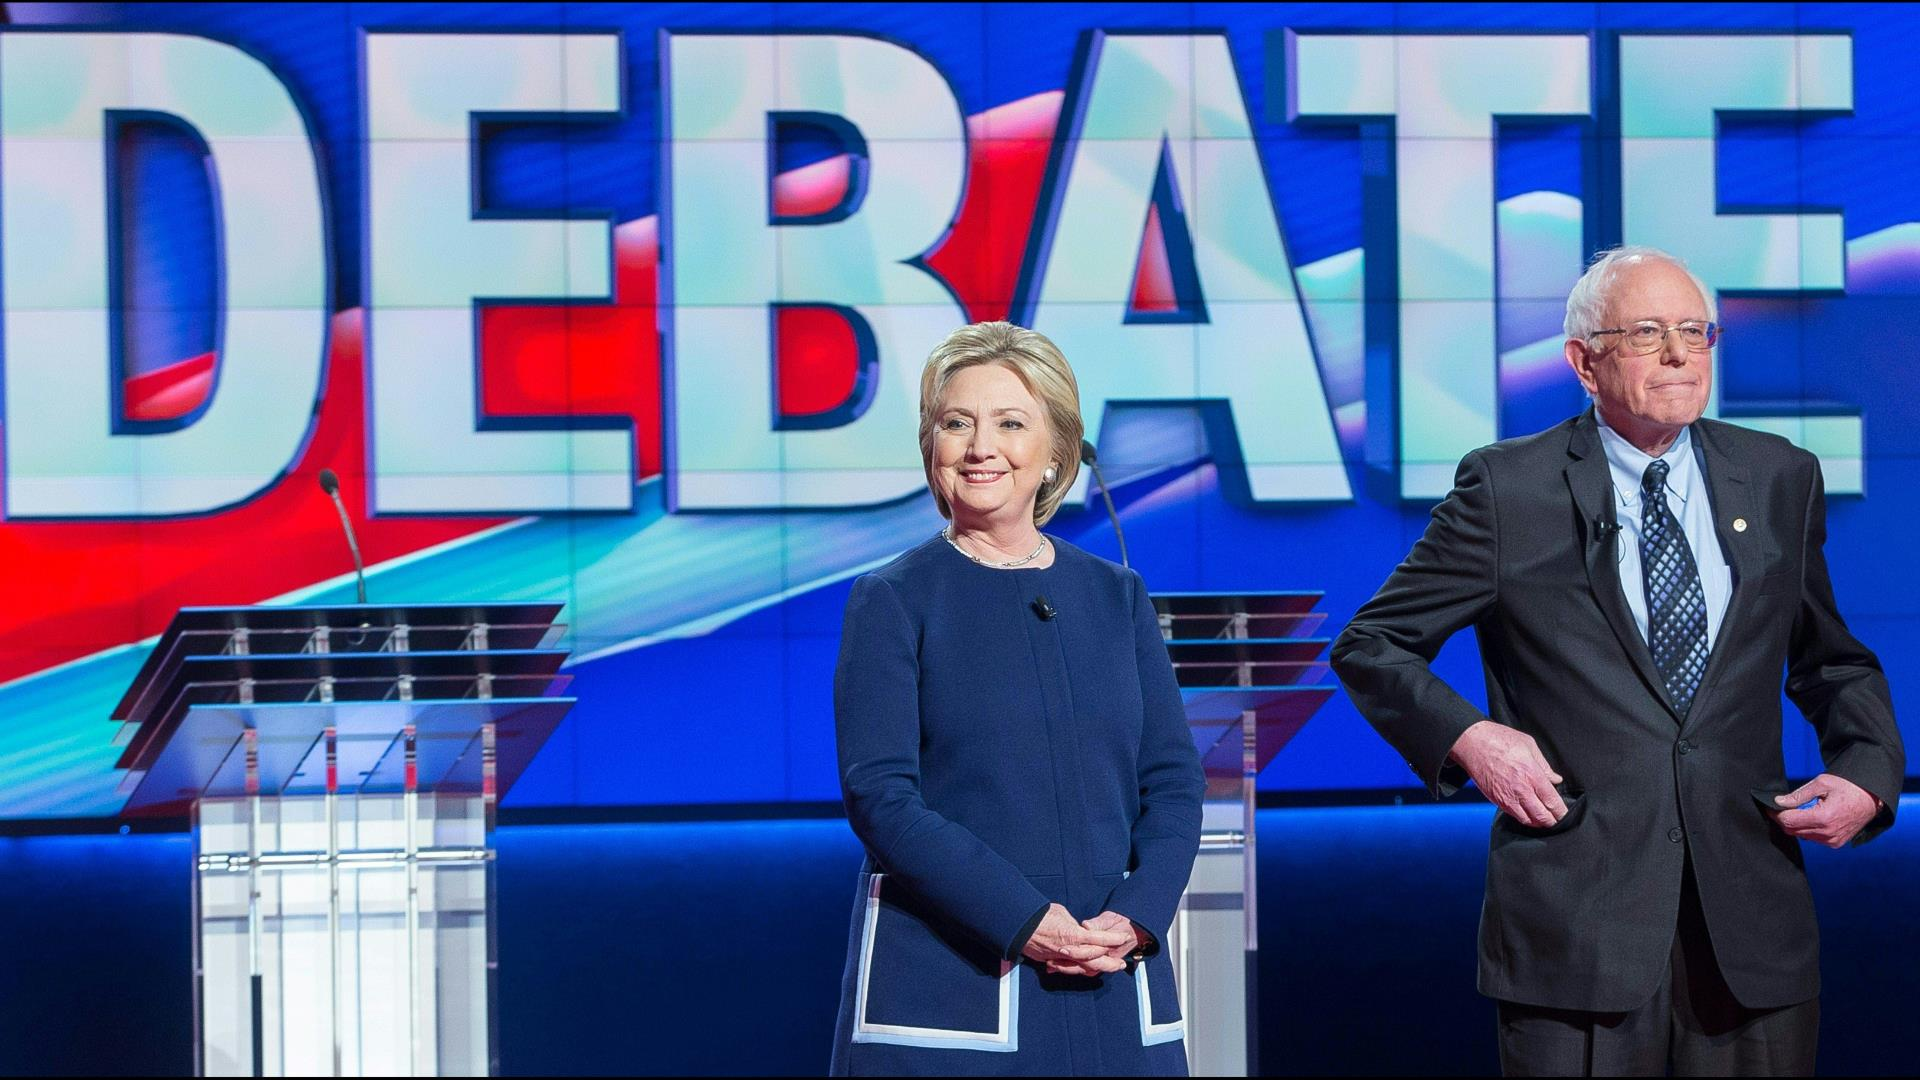 Highlights from the Democratic Debate in Flint, Michigan